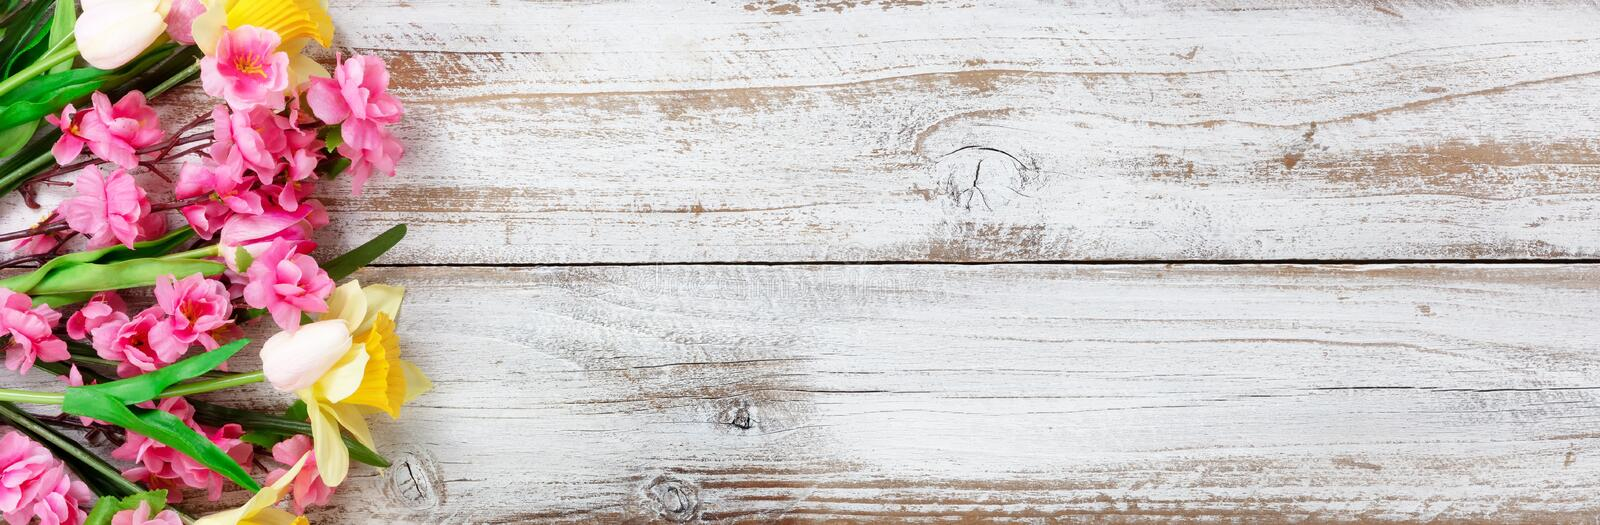 Springtime flowers on white rustic wooden background for seasonal holidays like Easter and Mothers Day stock image